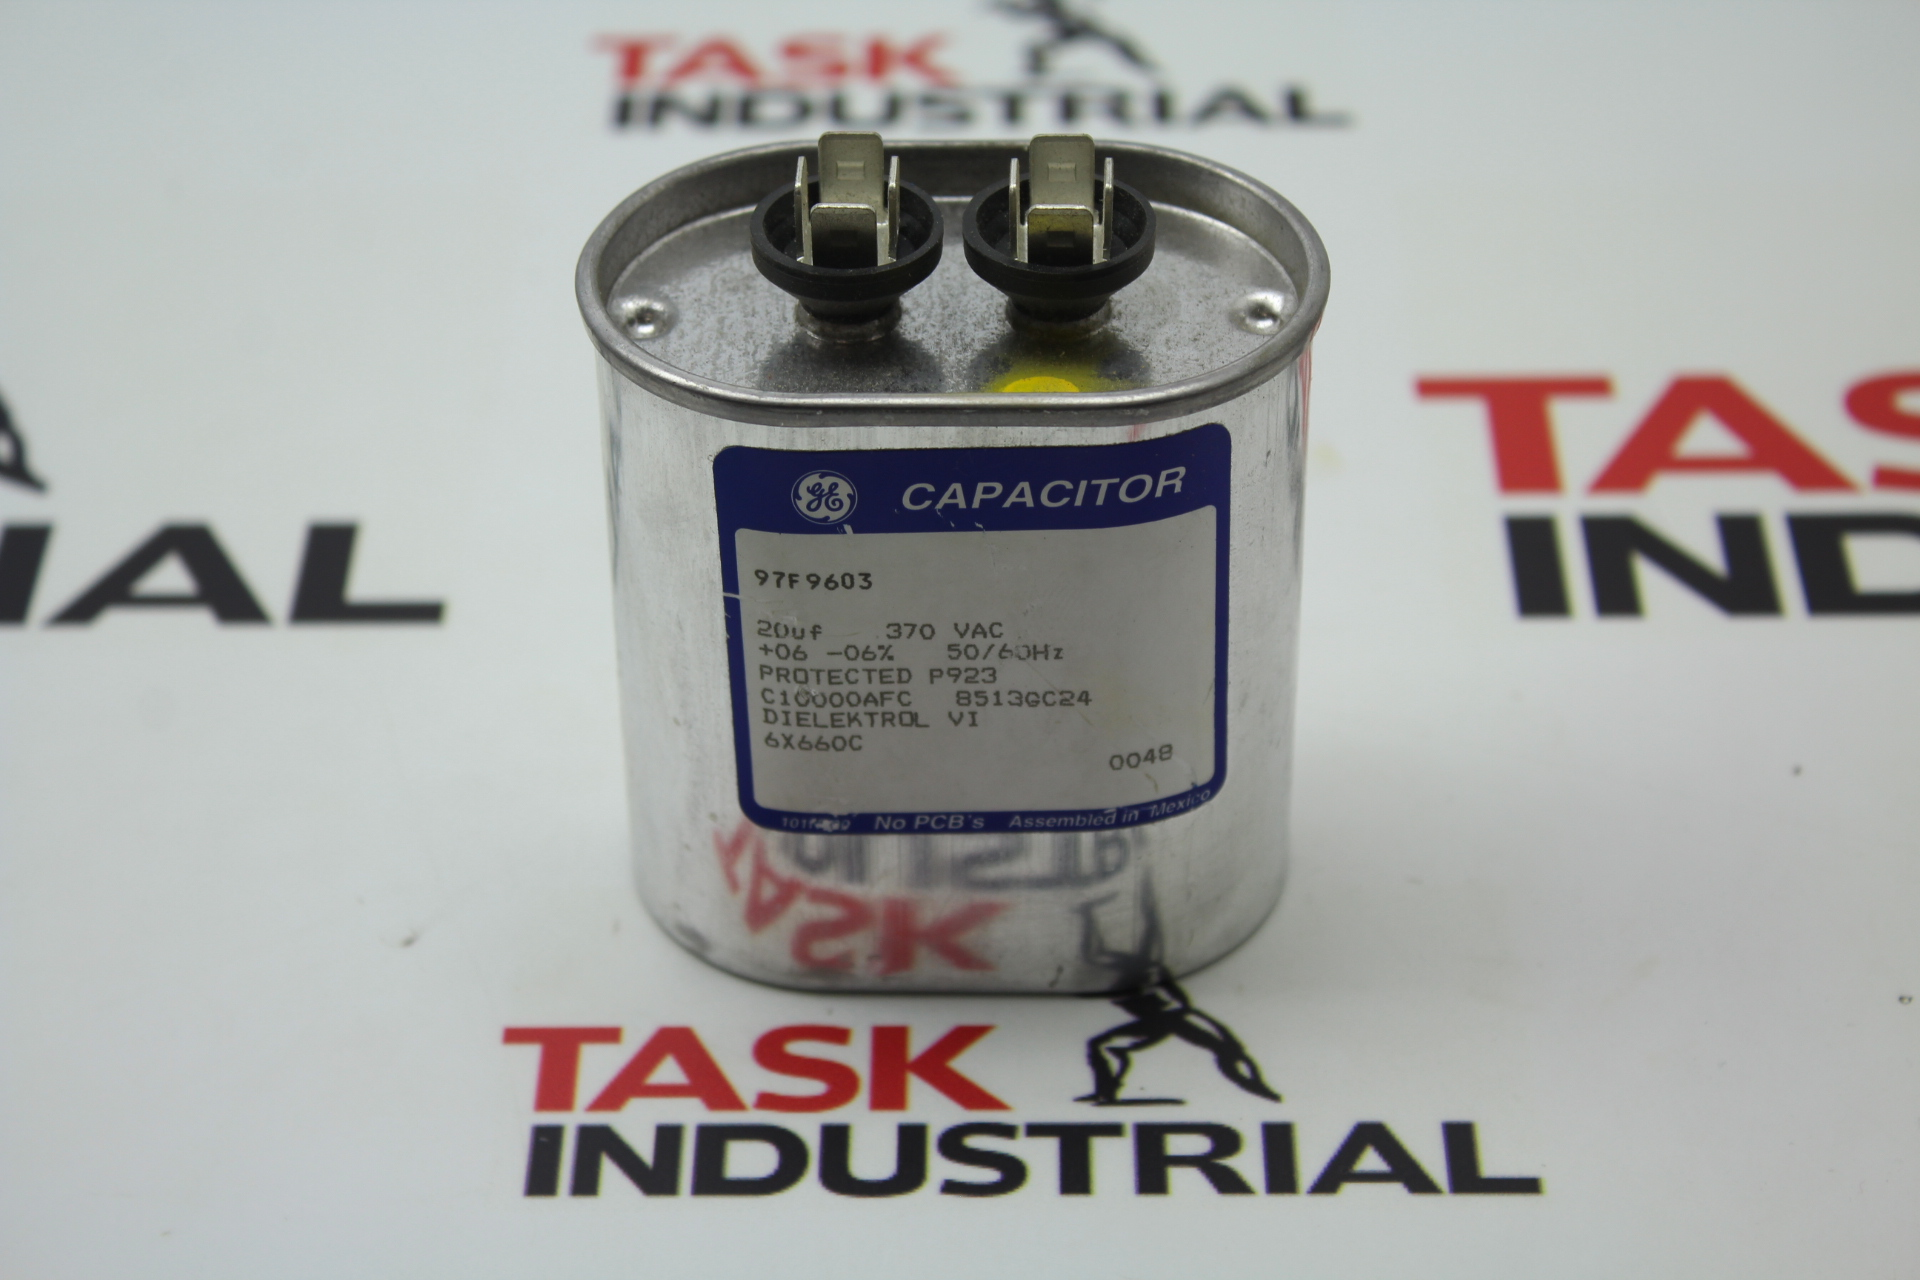 GE Capacitor 97F9603